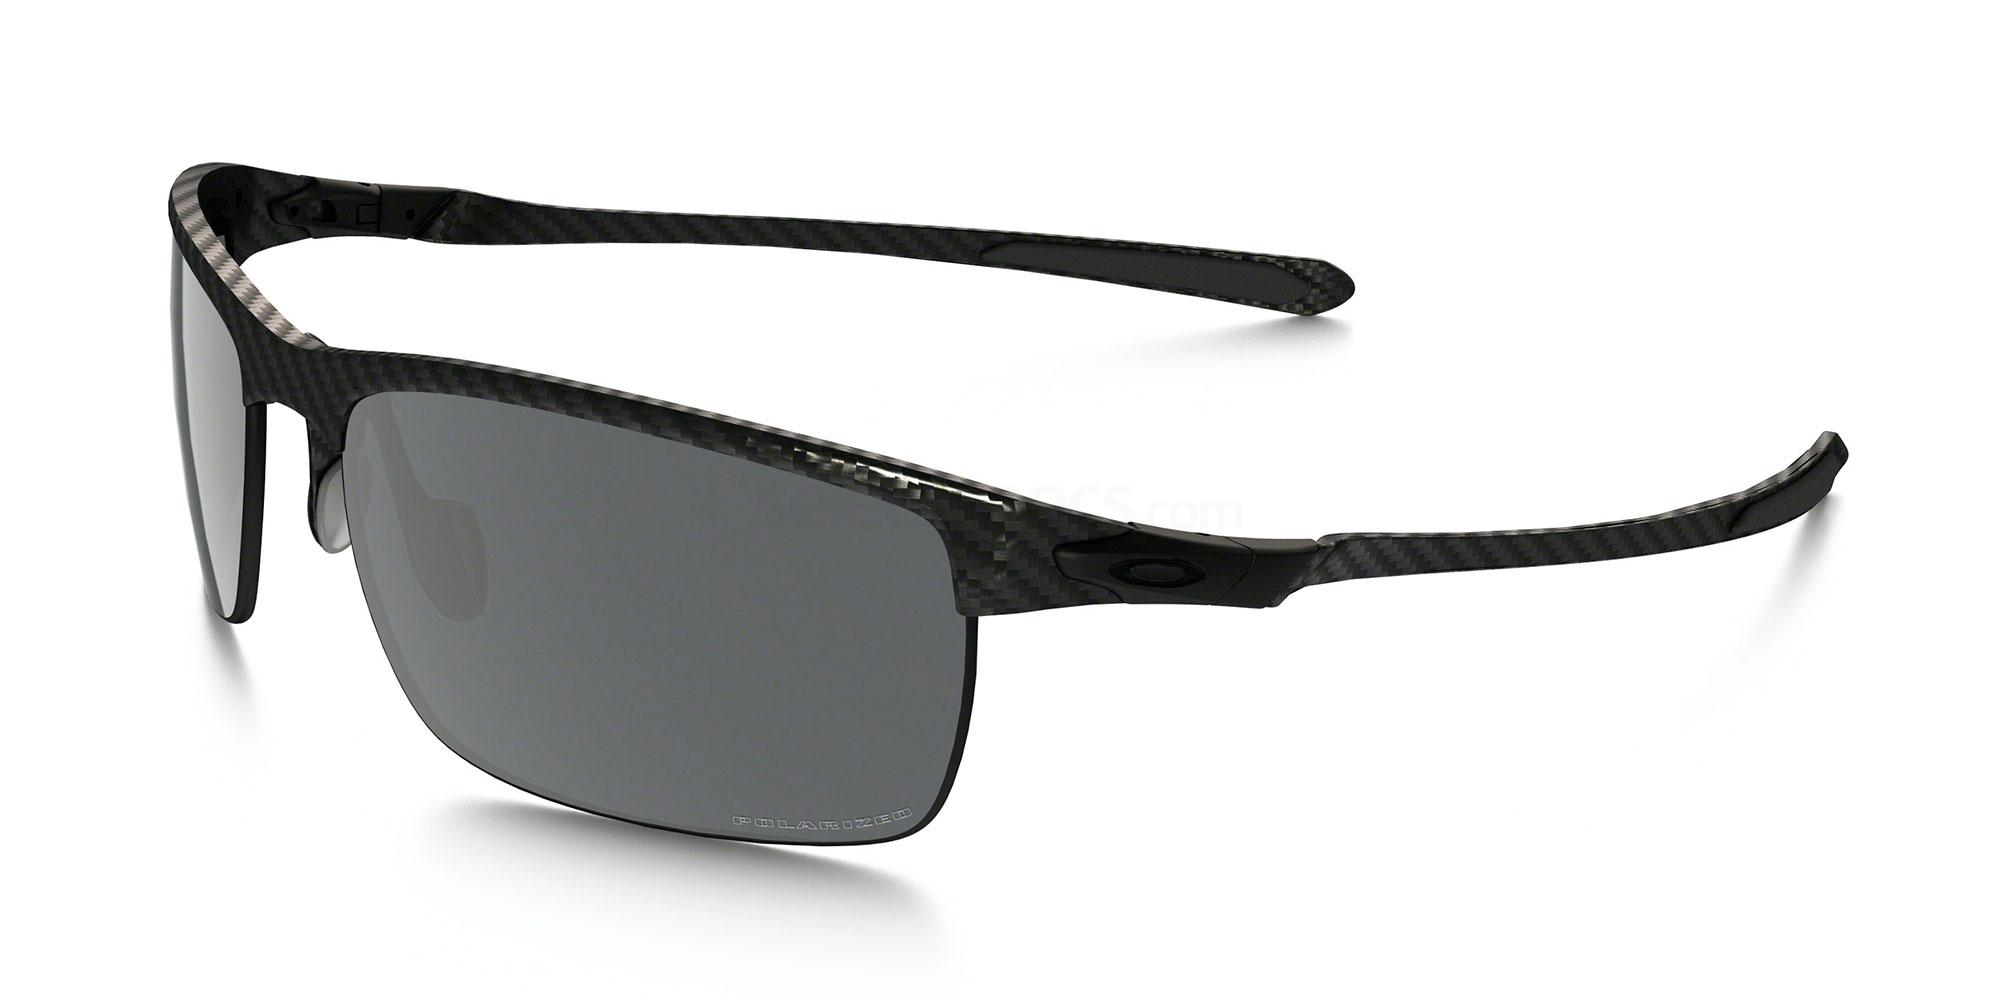 917403 OO9174 CARBON BLADE (Polarized) Sunglasses, Oakley